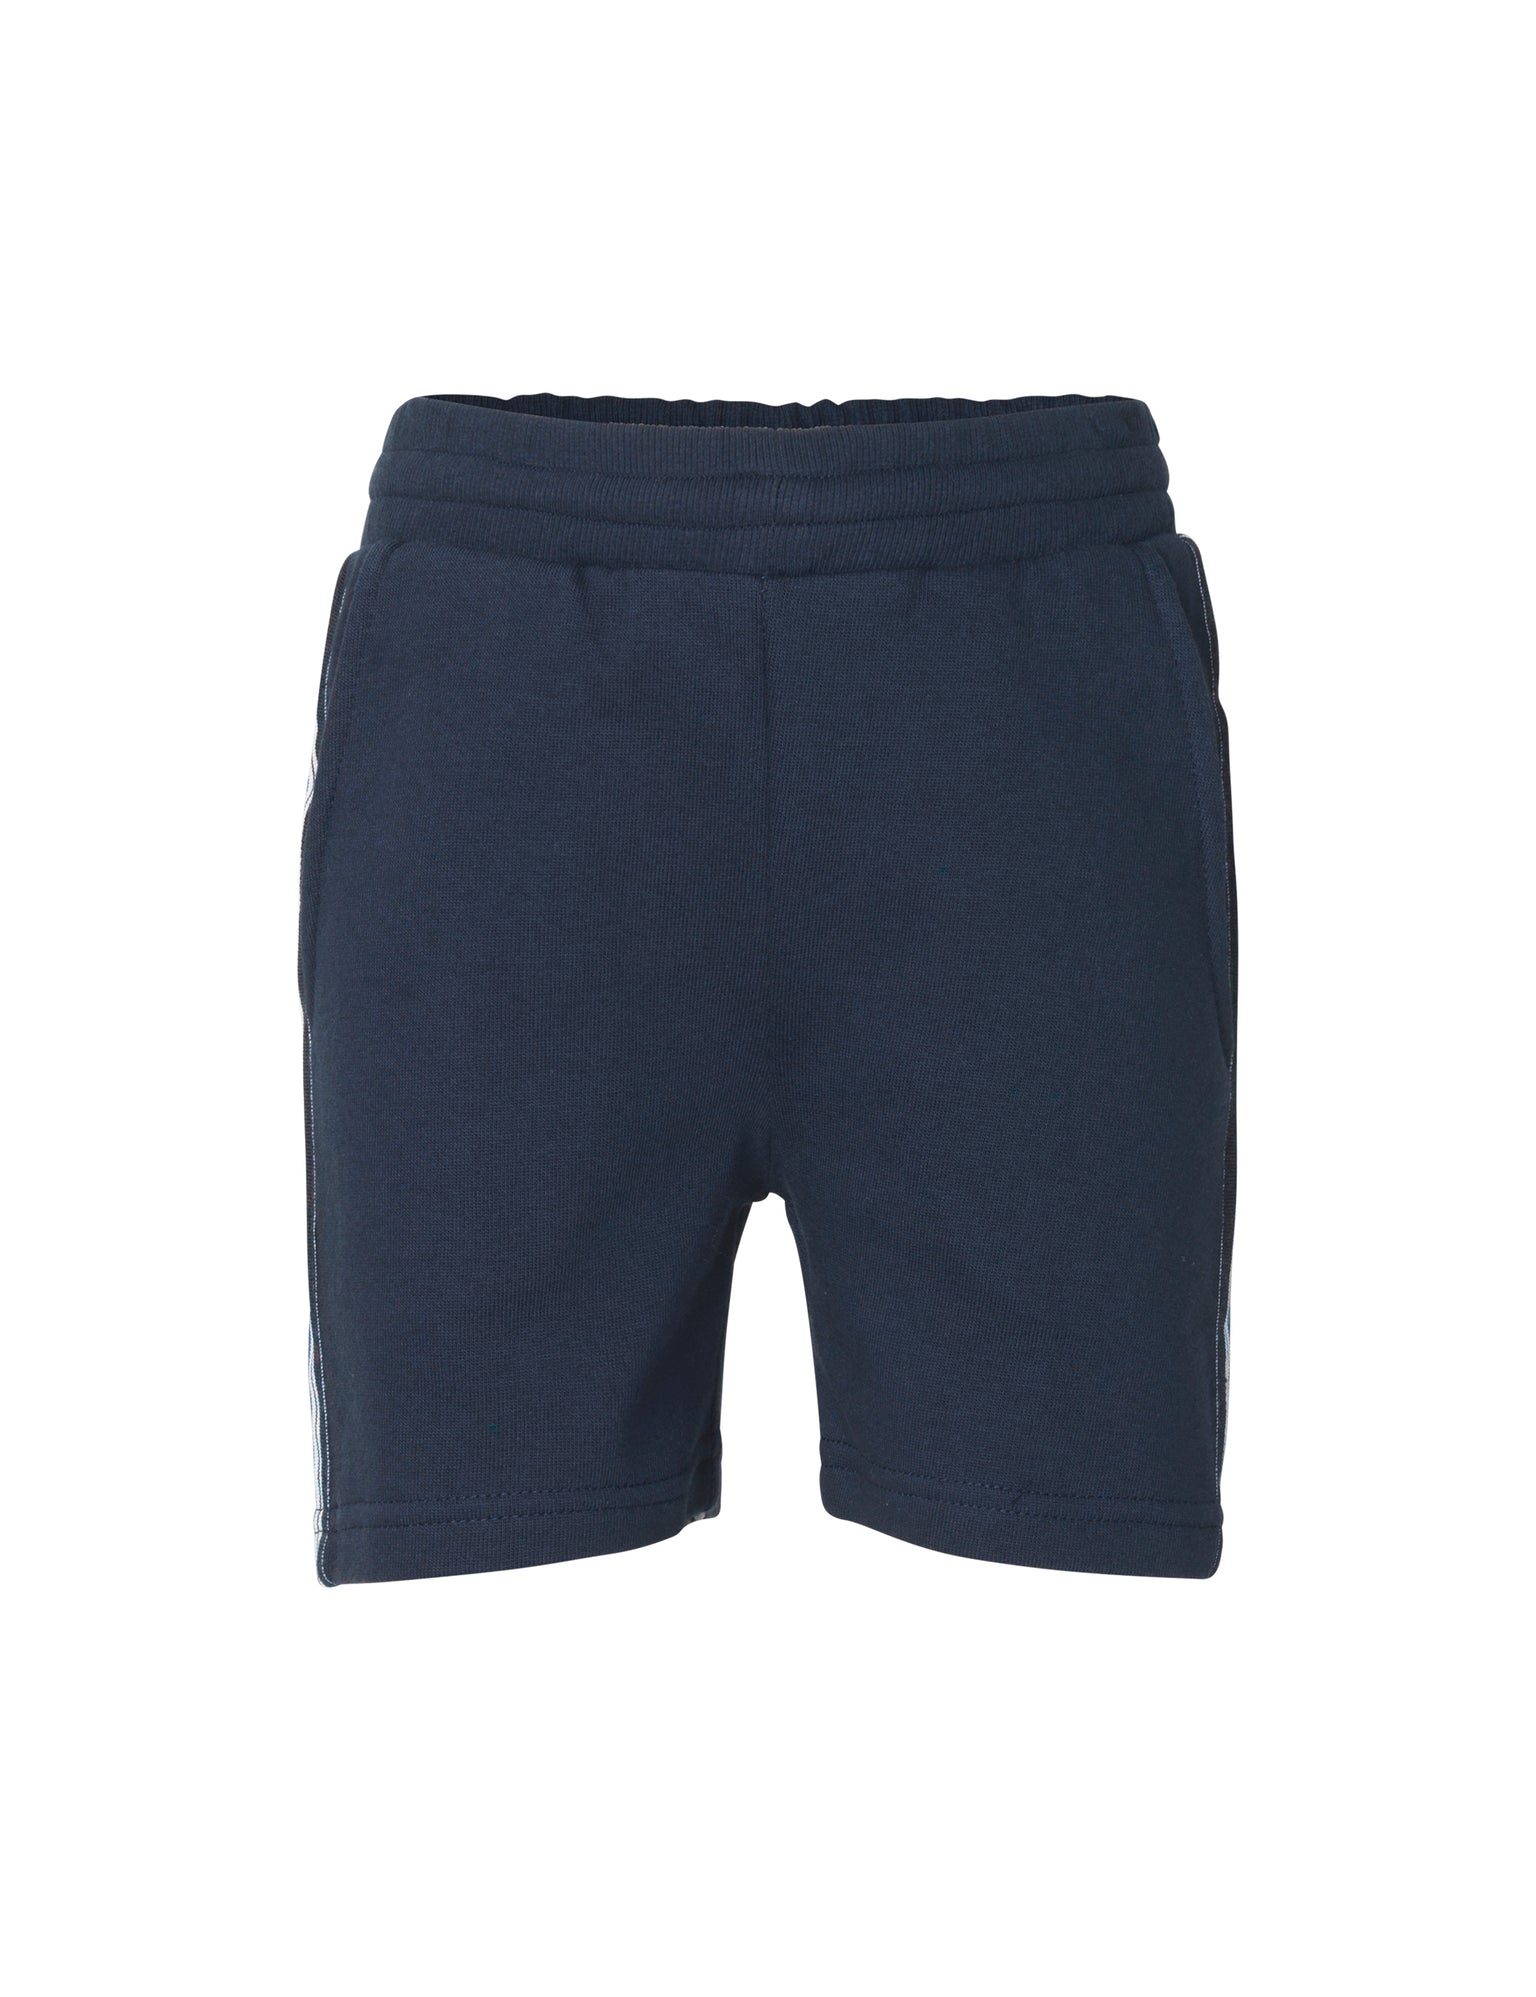 Organic Sweat Porsulano, Navy